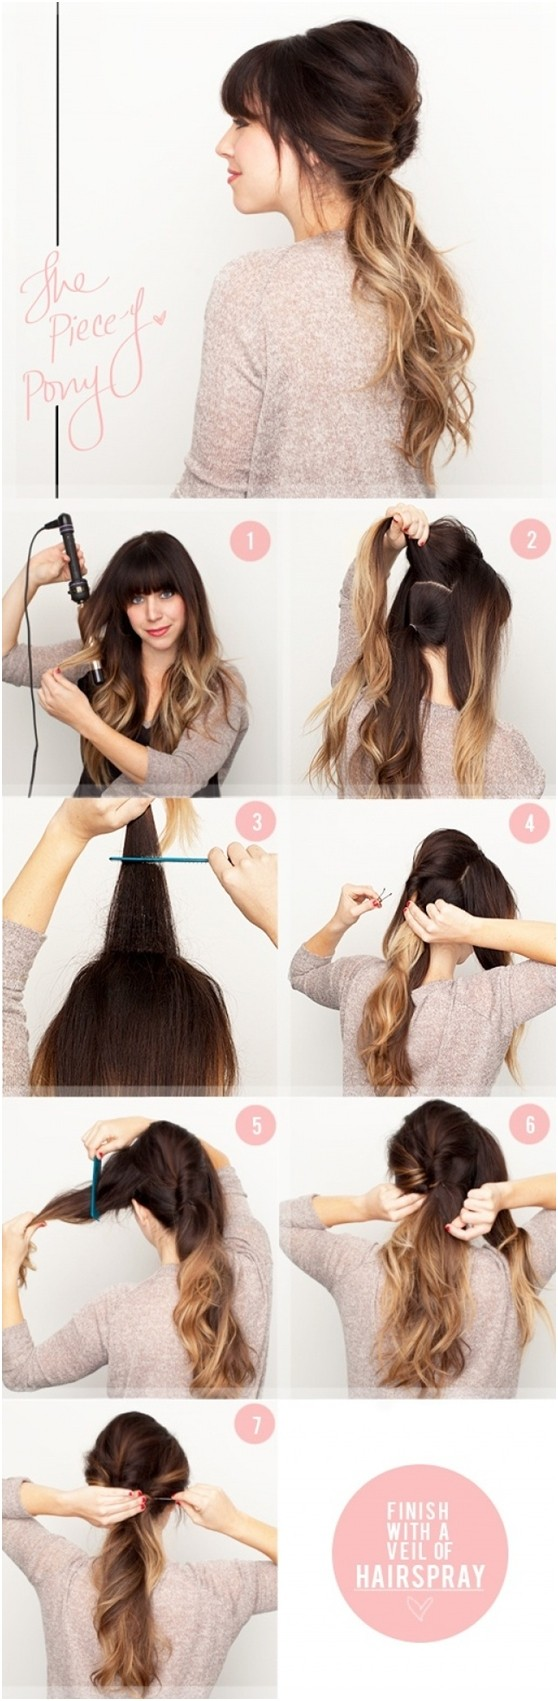 cute hairstyles for picture day at school : Easy Ponytail Hairstyle for Ombre Hair